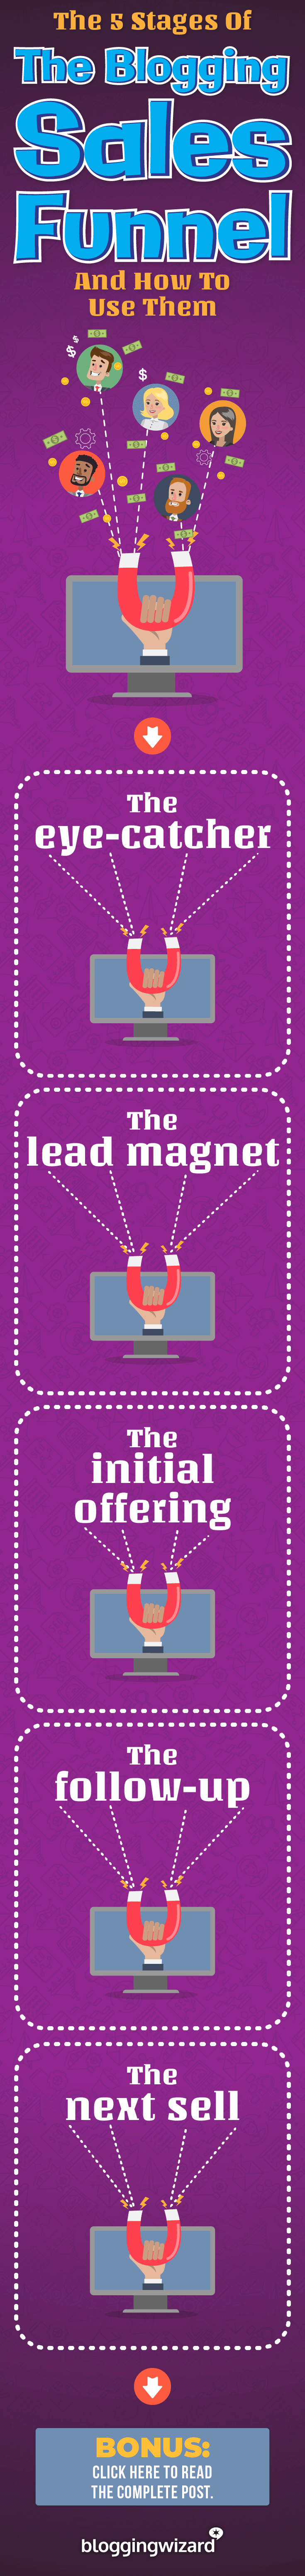 The 5 Stages Of The Blogging Sales Funnel And How To Use Them Pinterest Mini Graphic